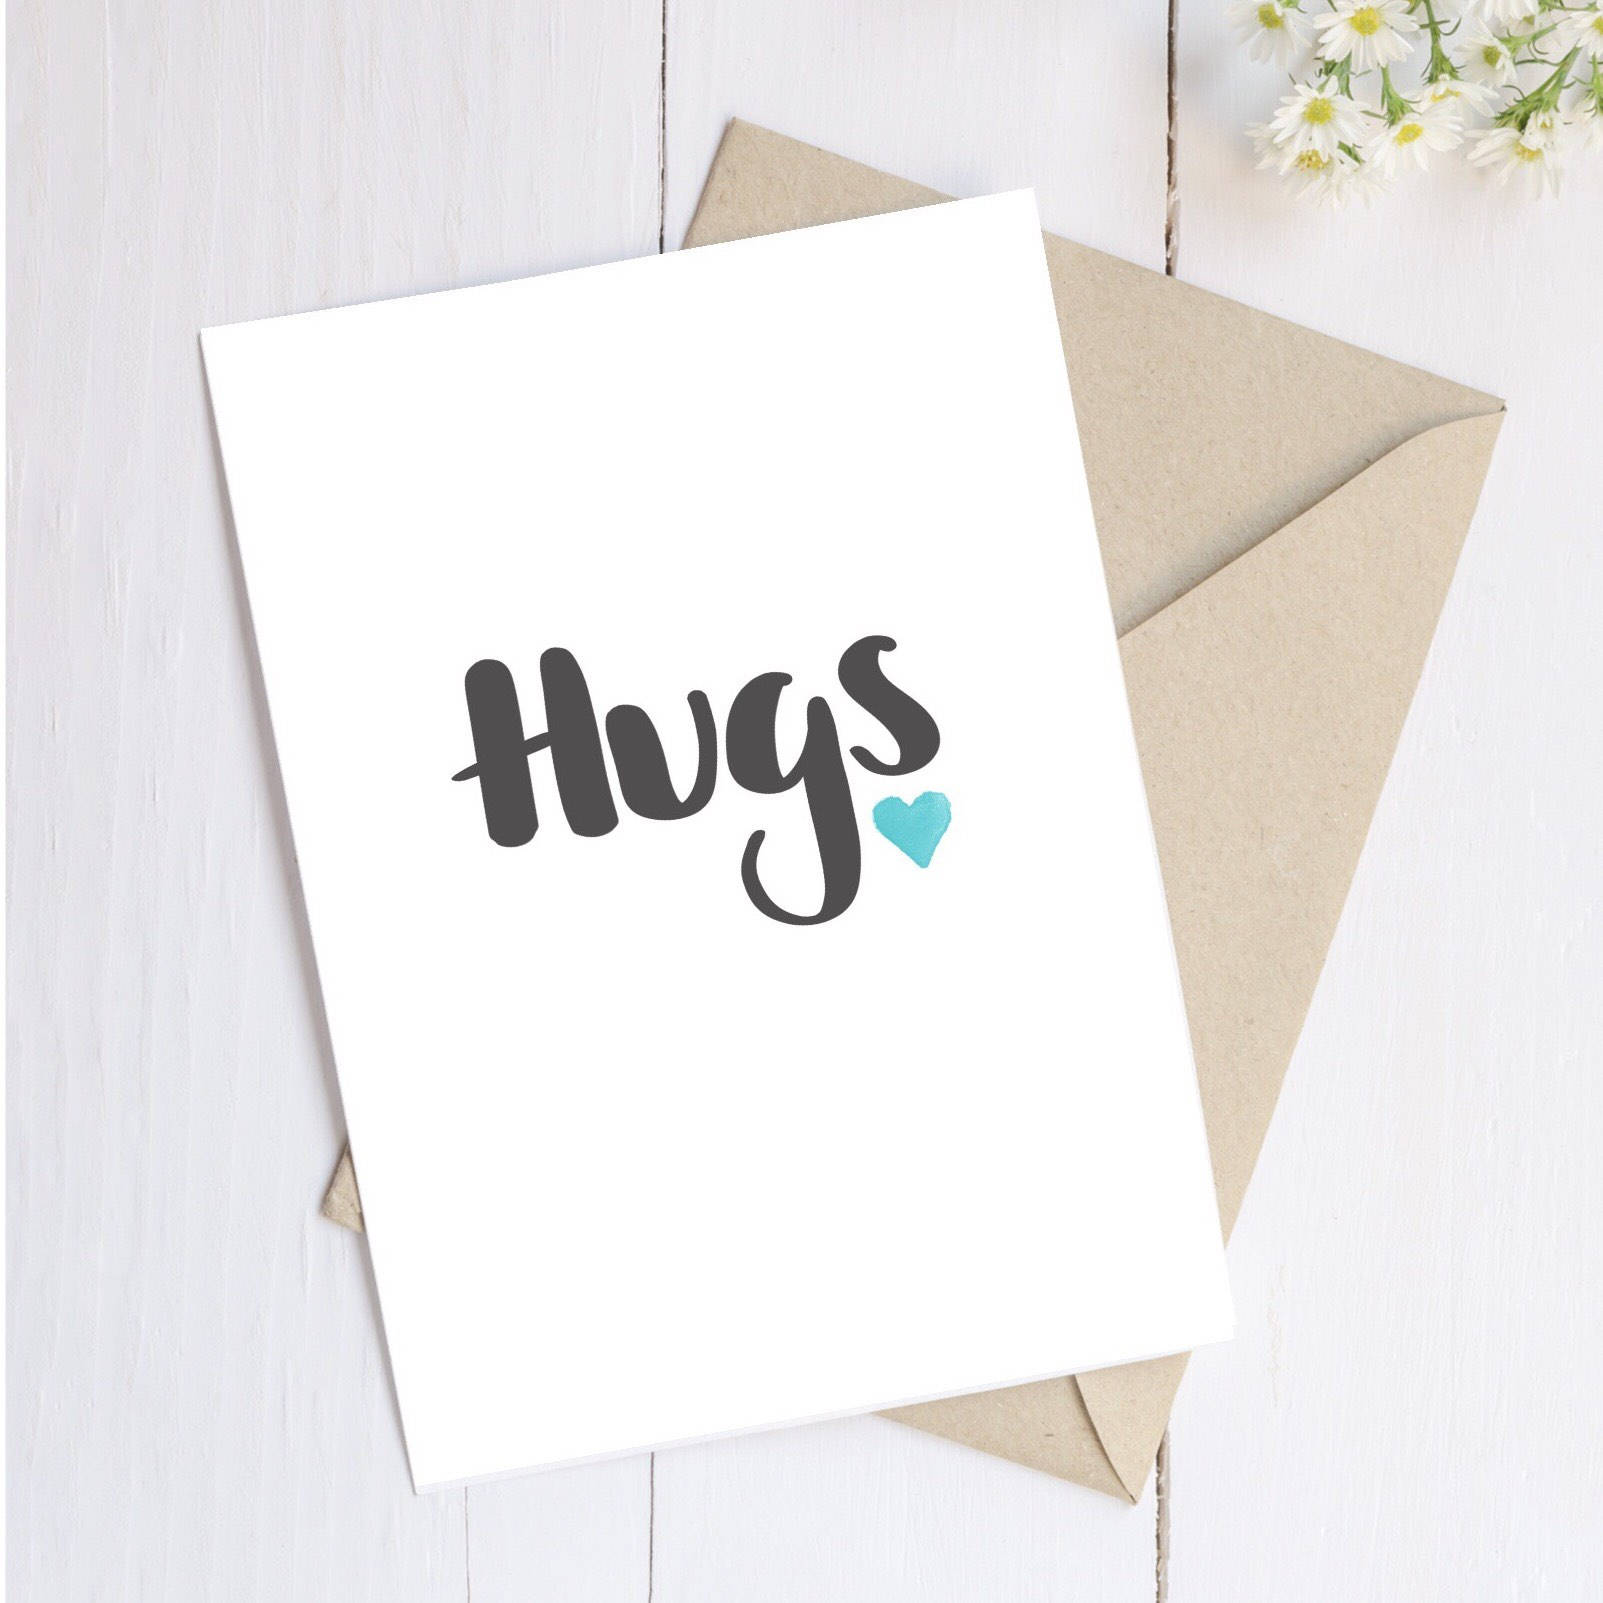 Hugs Card by Ginger Twenty Two